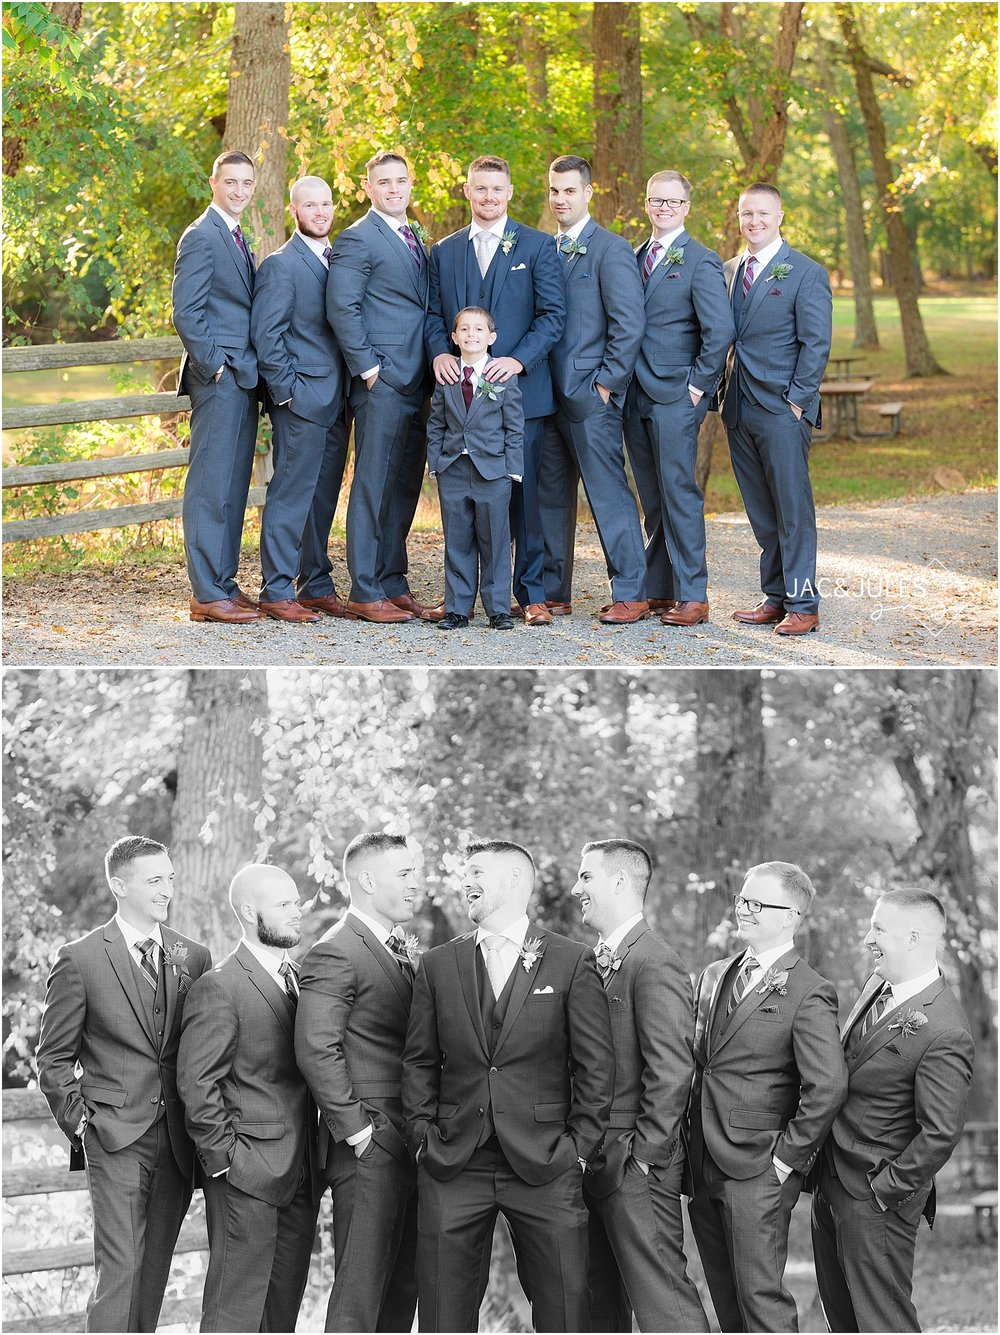 jacnjules photographs groom and groomsmen at Allaire State Park for a wedding